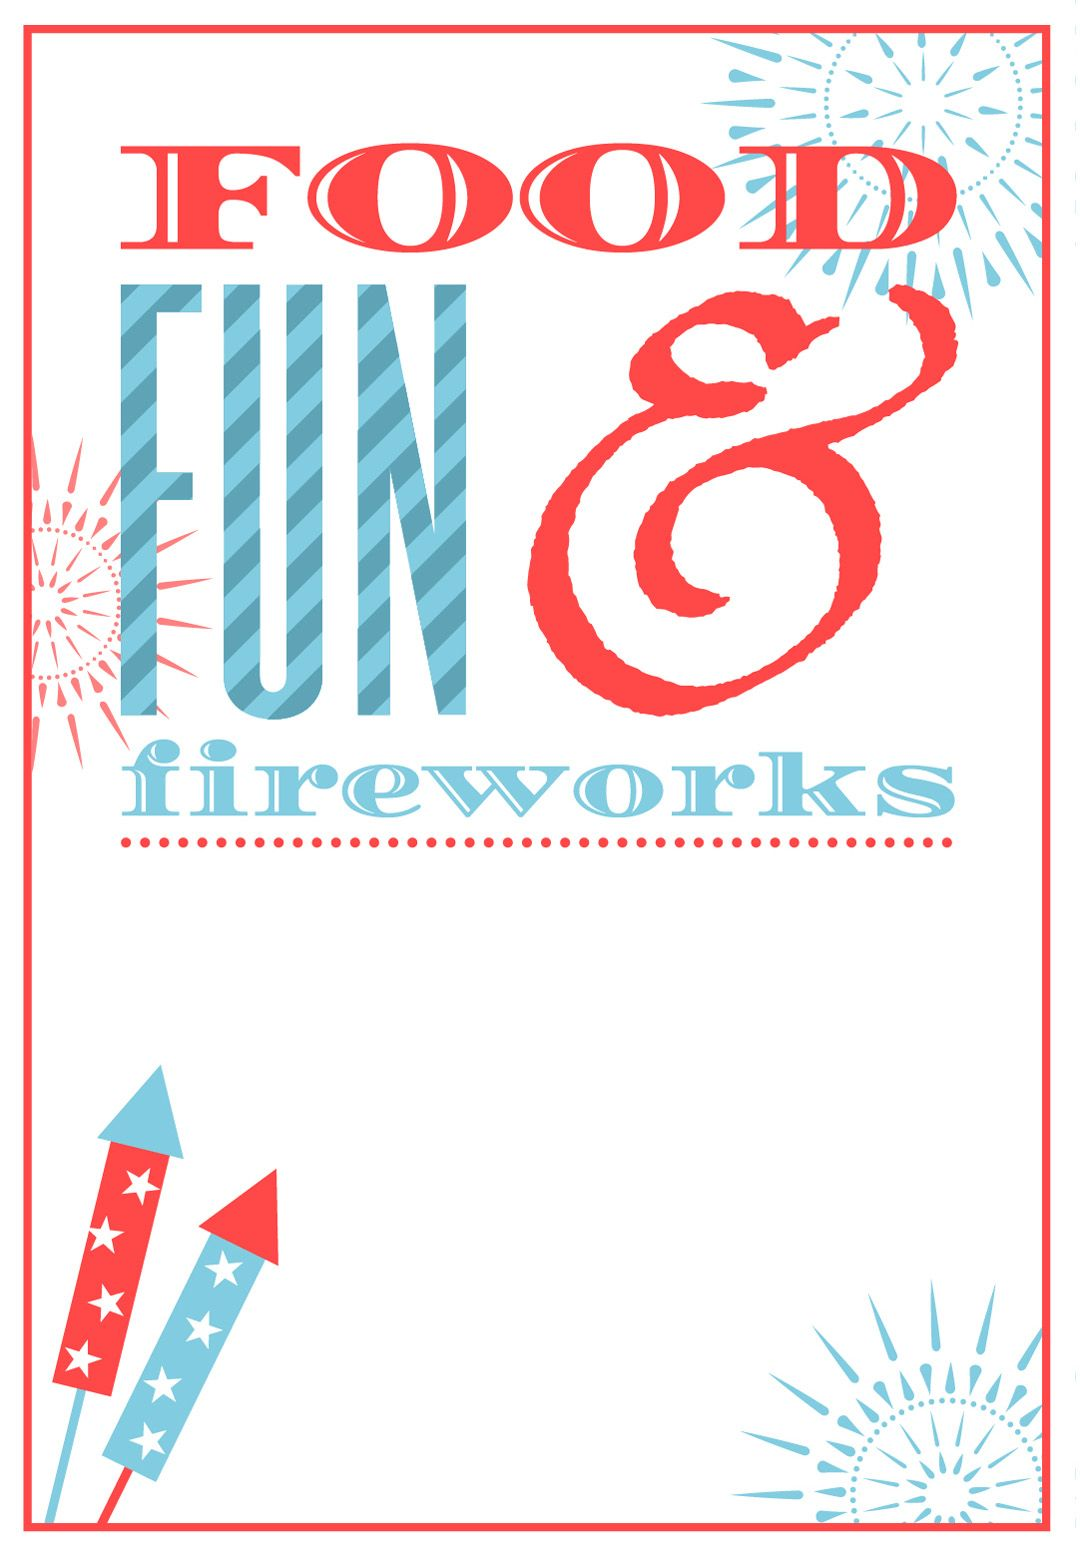 free printable 4th of july invitation july fourth pinterest